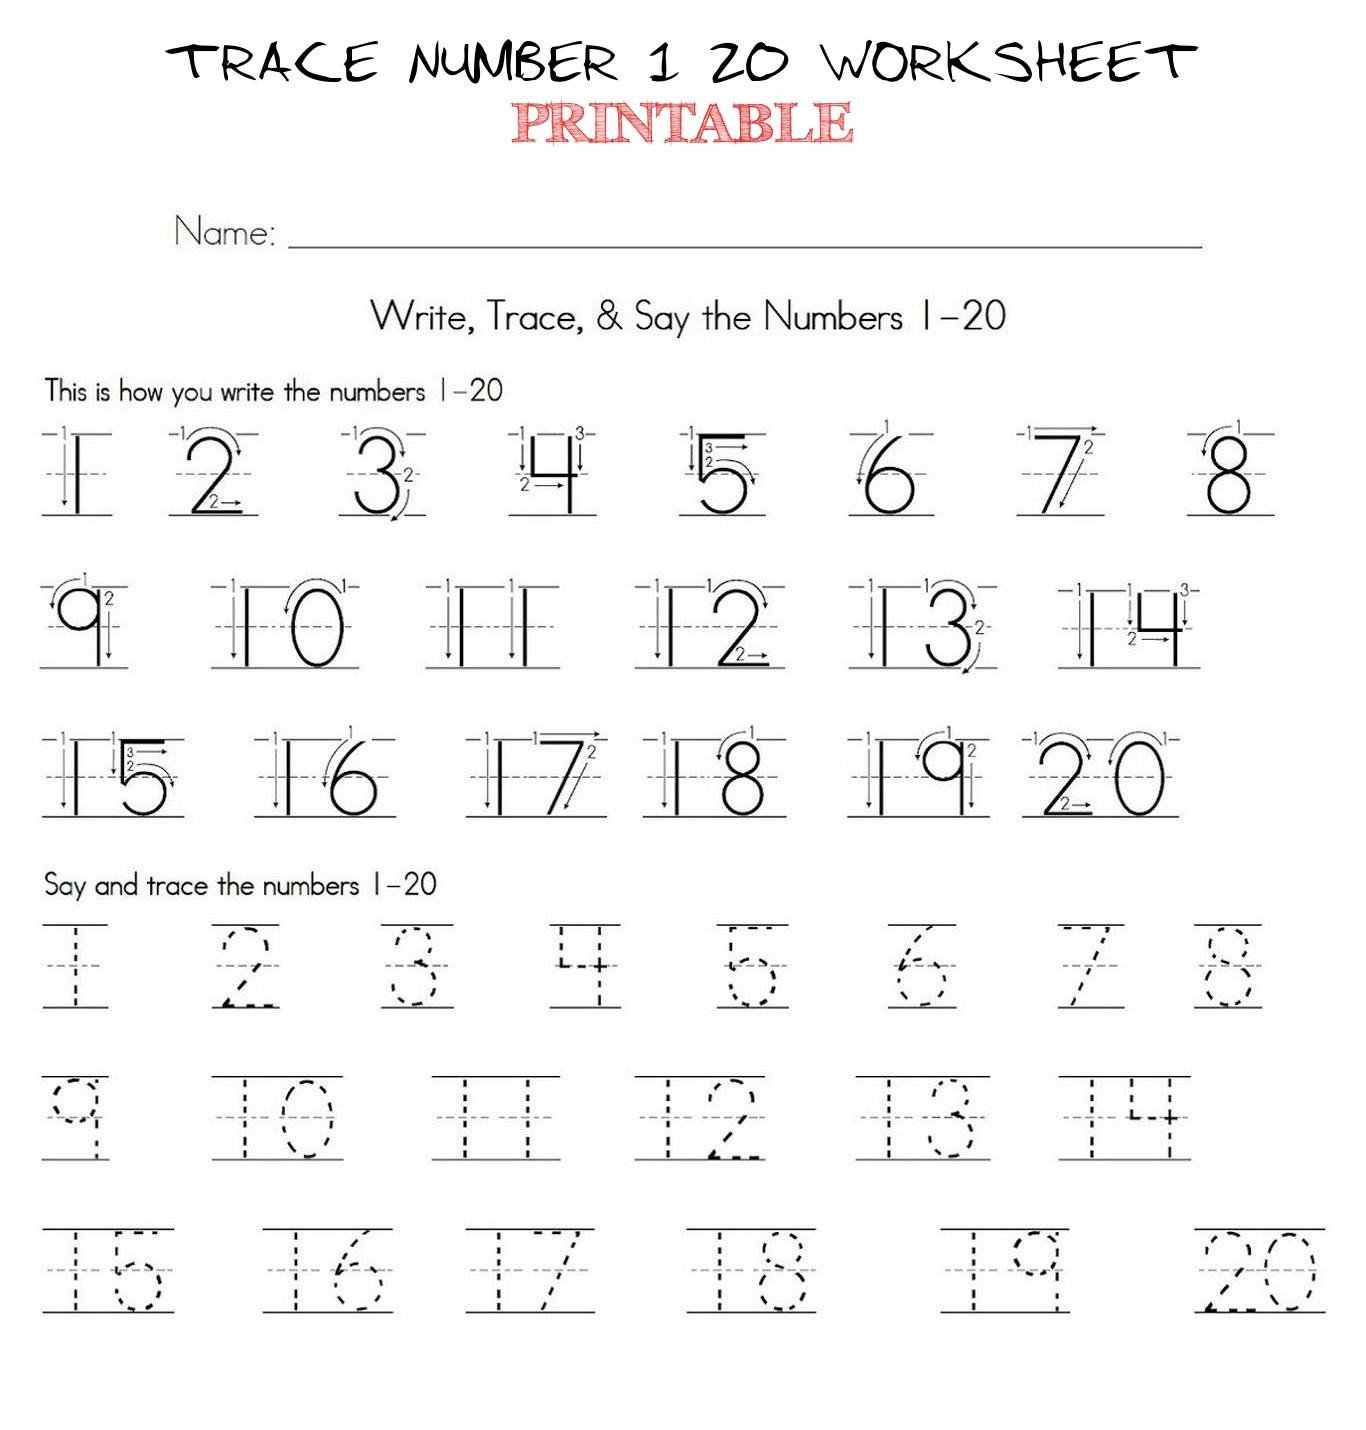 Trace Numbers 1 30 Worksheet Trace Number 1 20 Worksheet Printable Trace Number 1 20